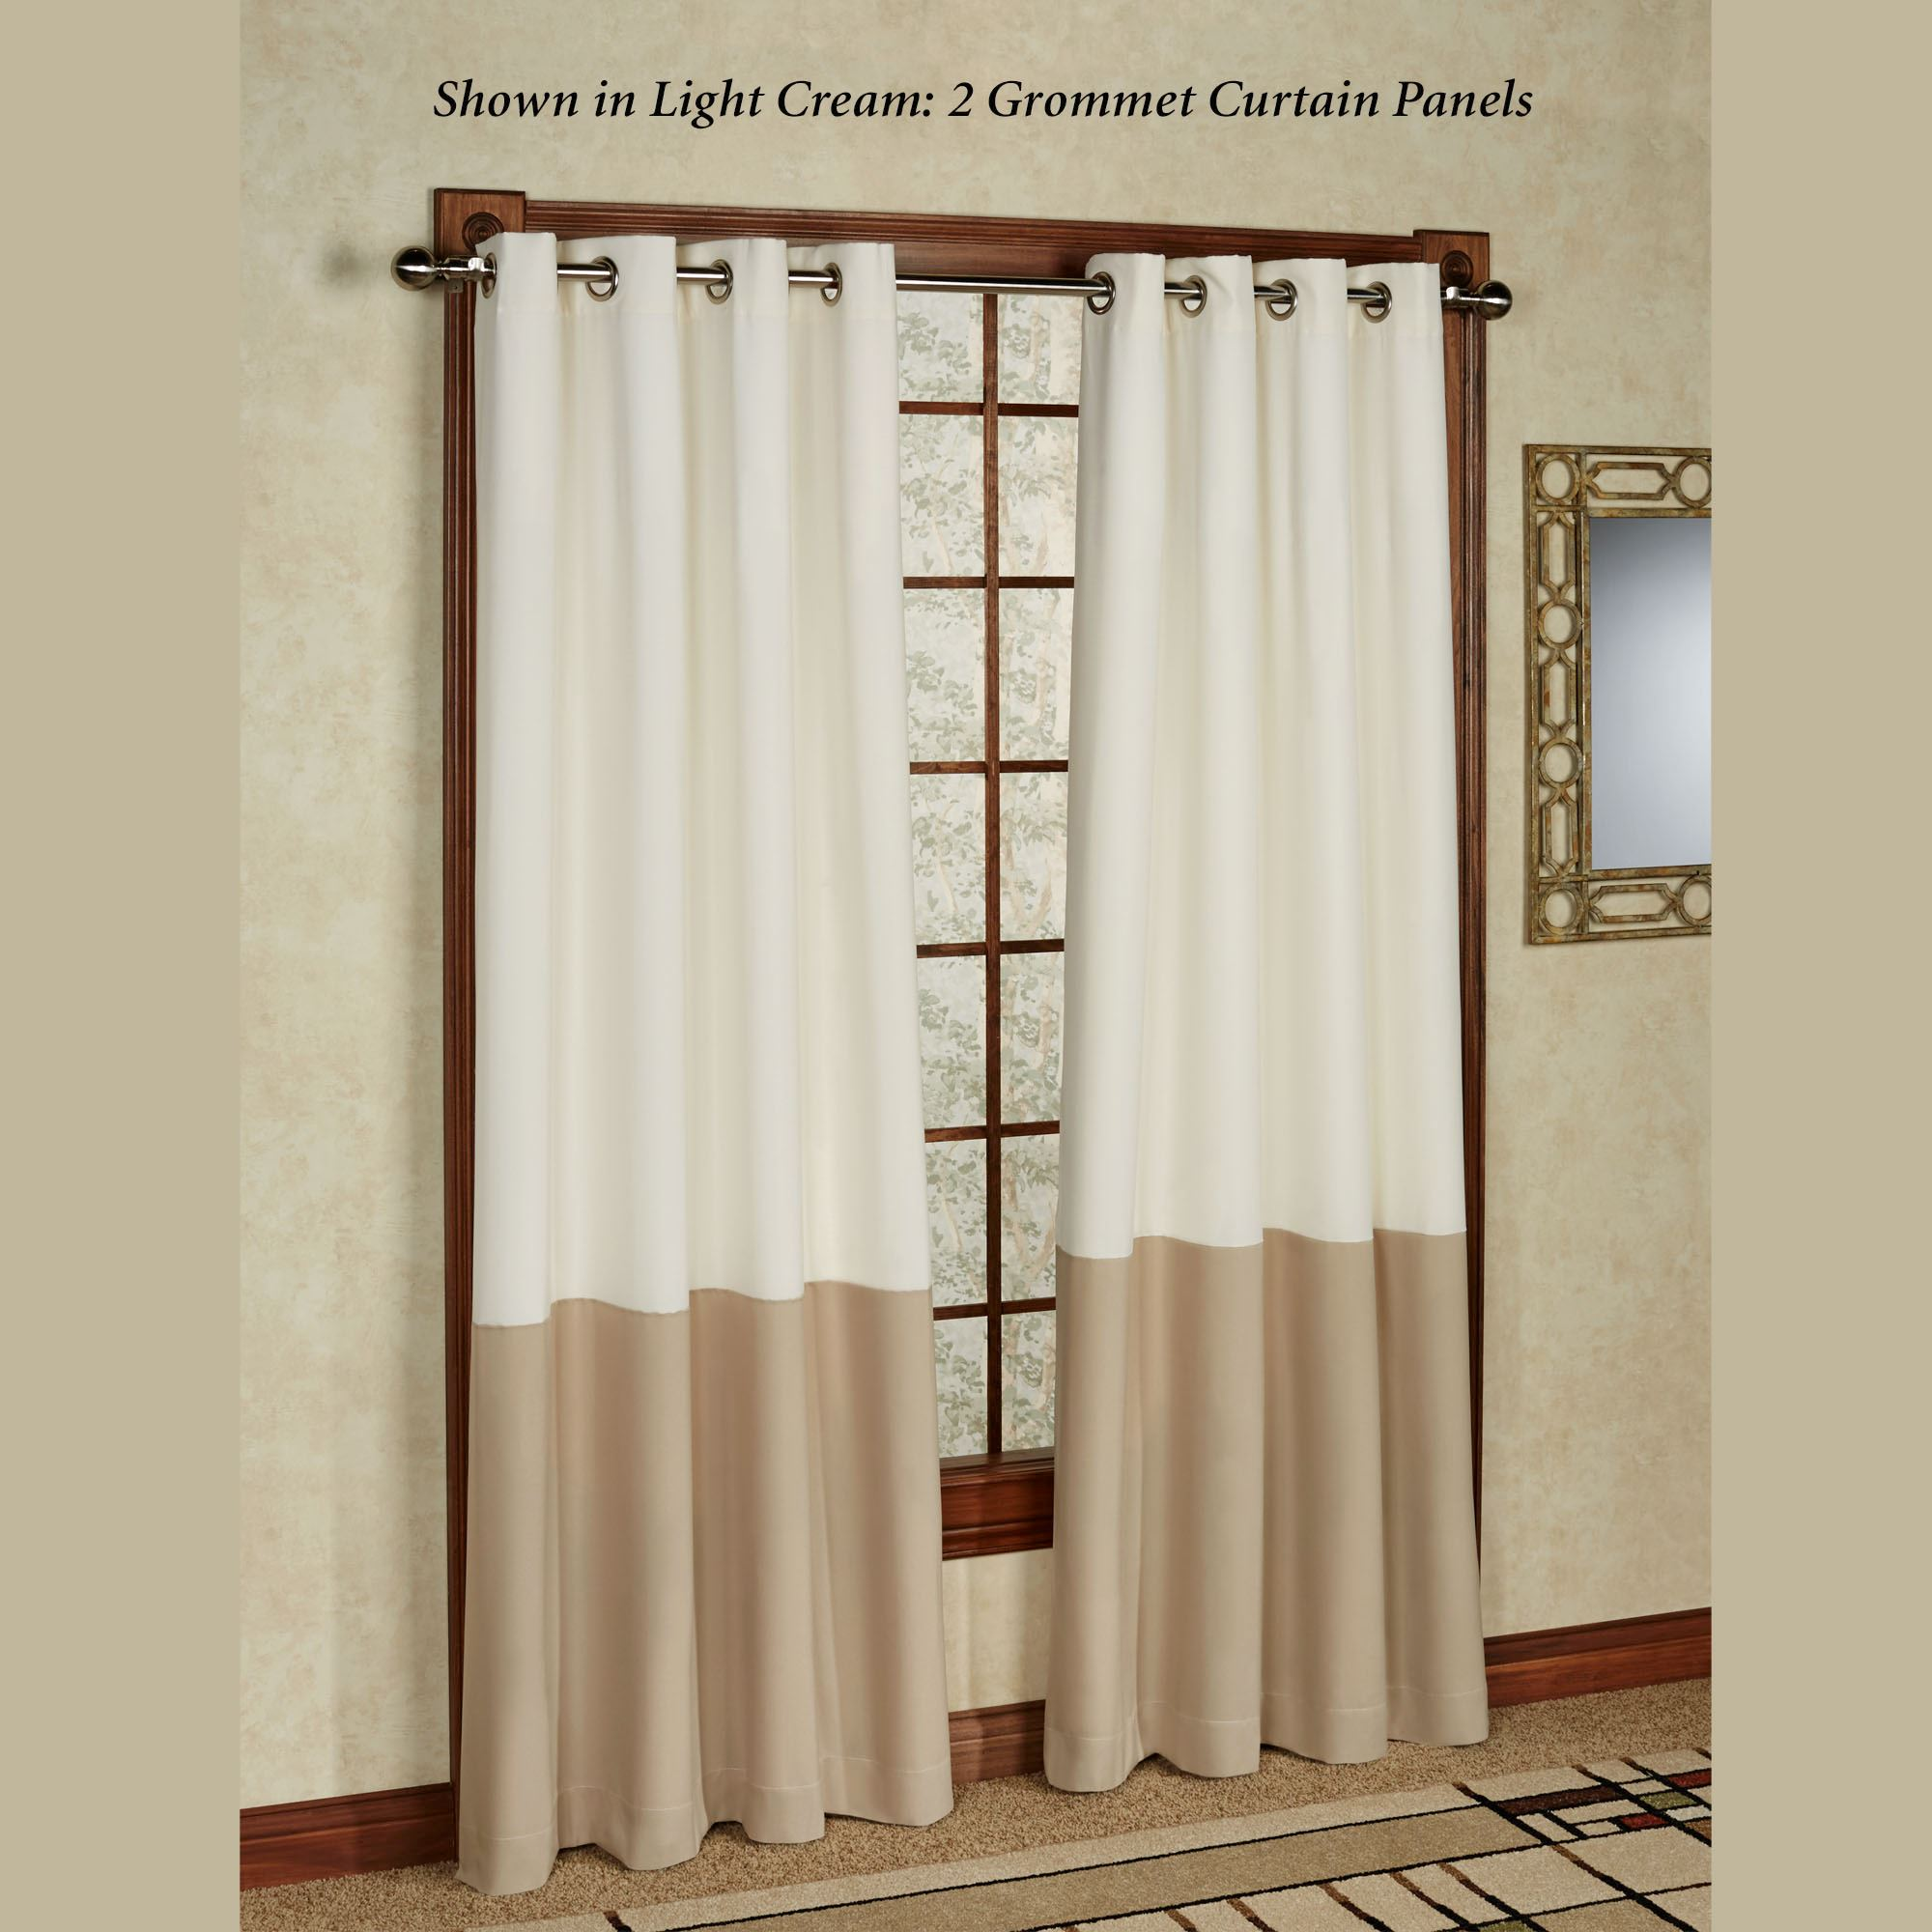 Where can i buy grommets for curtains home for Where to buy curtain panels